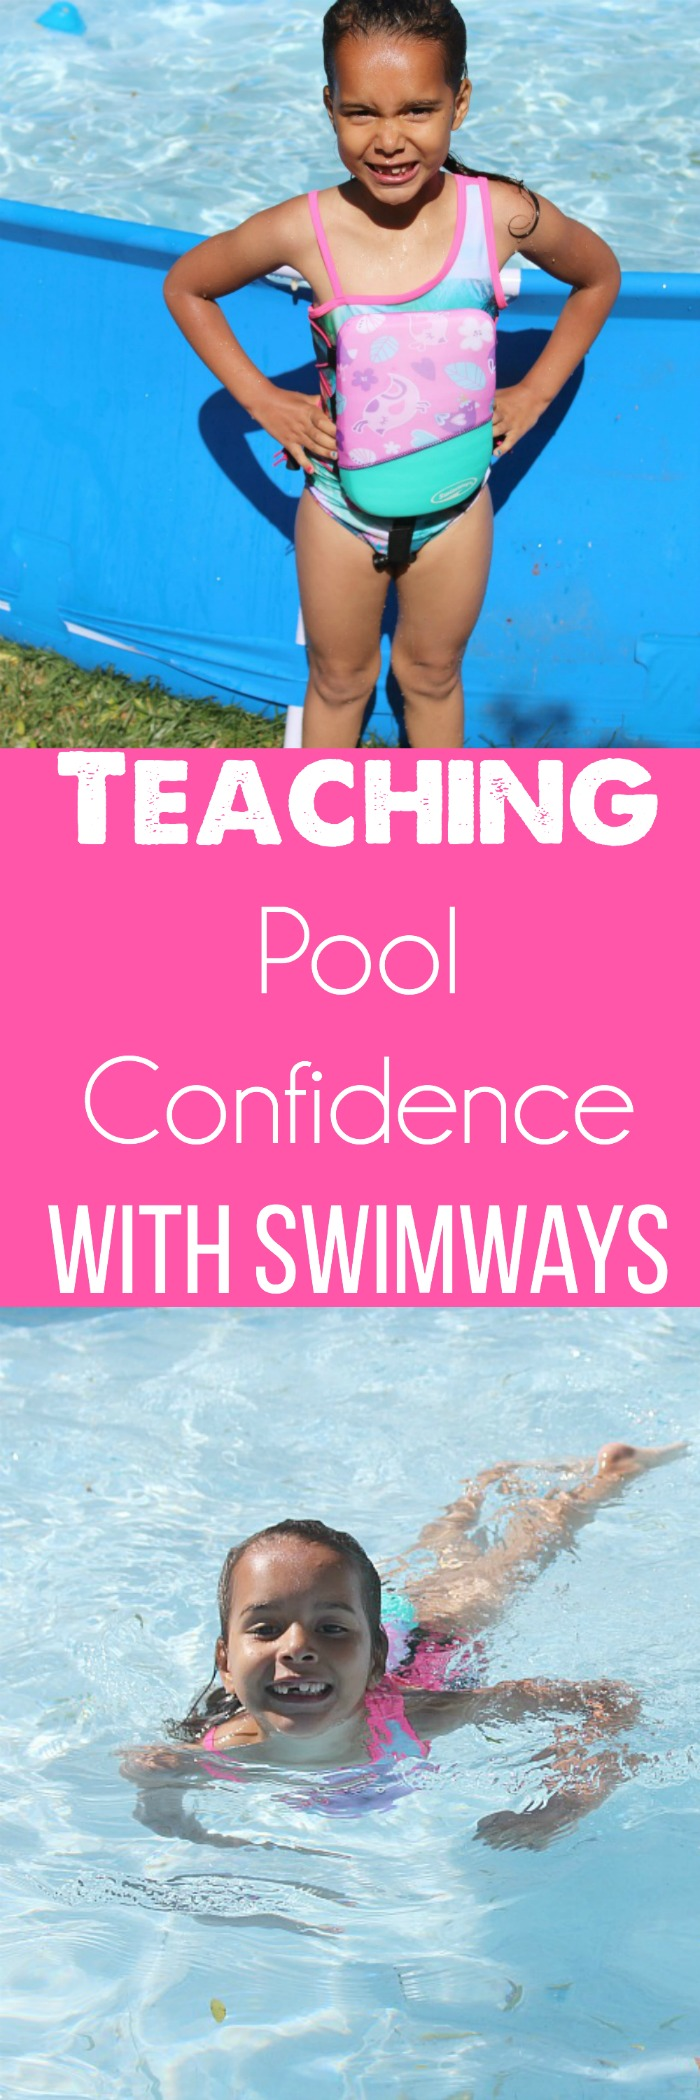 Teaching your kids swim confidence: 5 Ideas! via @DashOfEvans